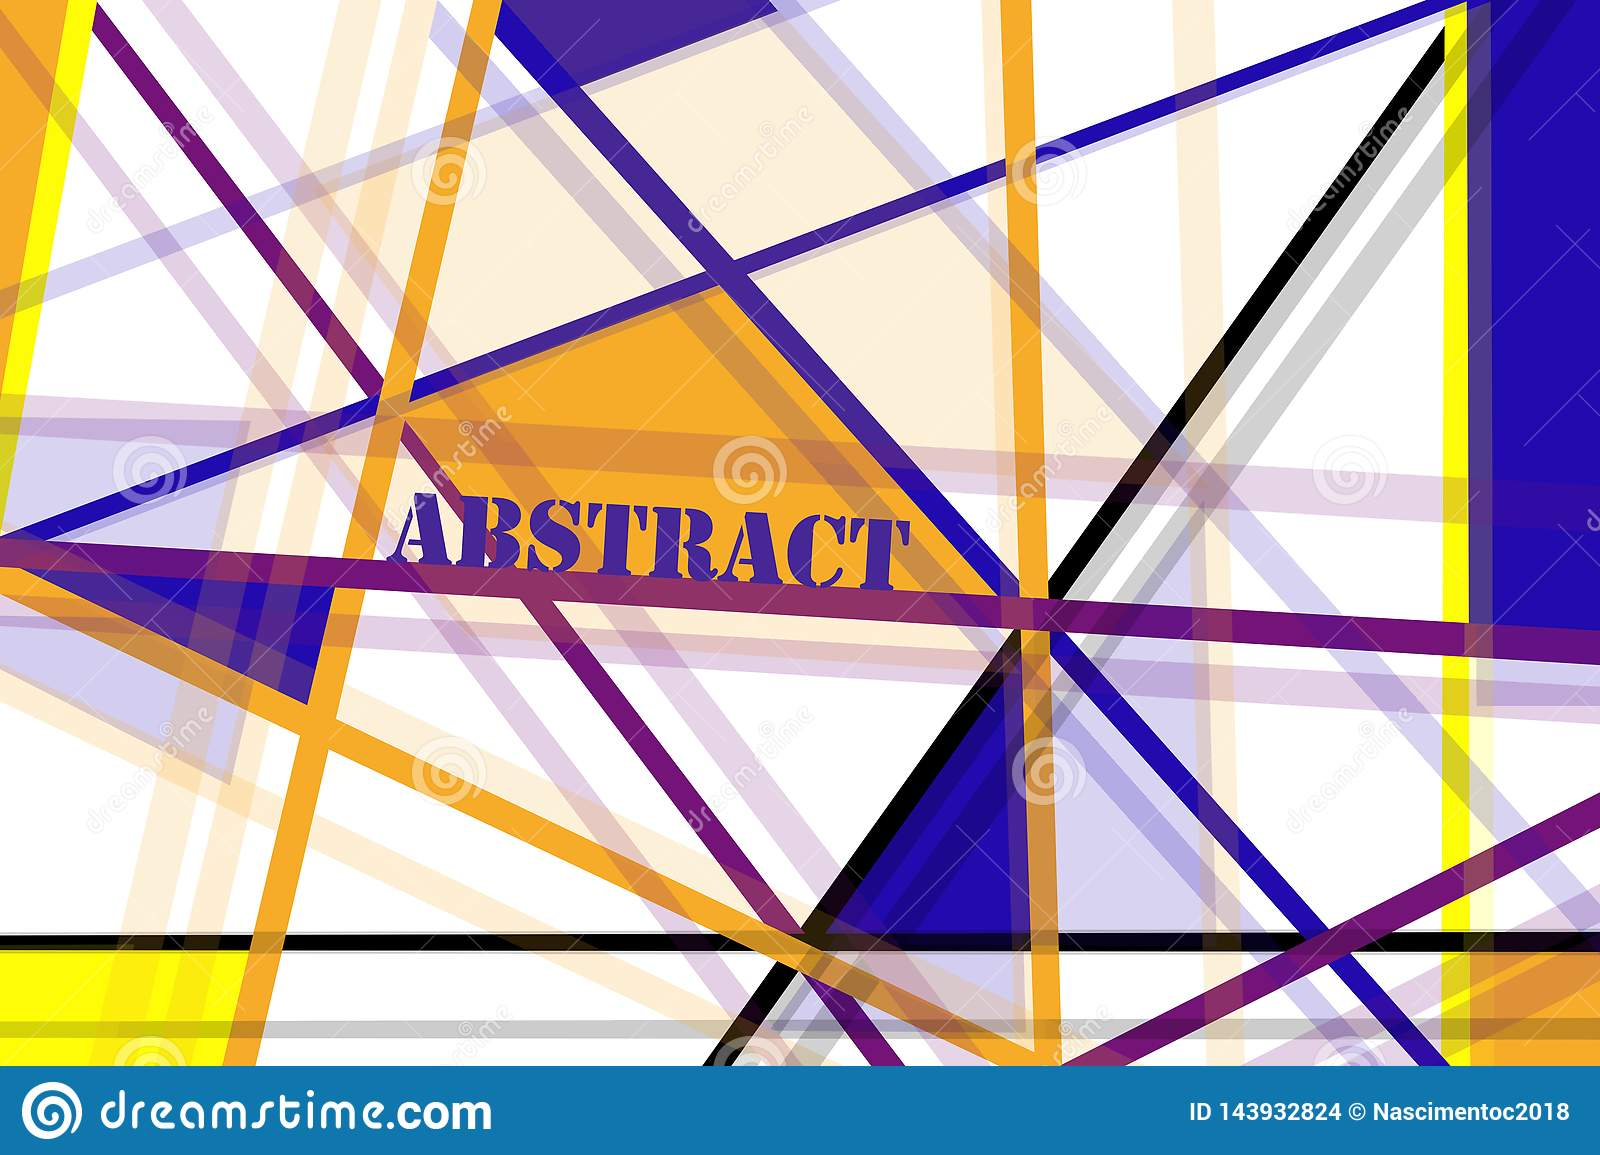 Abstract Illustration With Many Colored Lines In Vertical